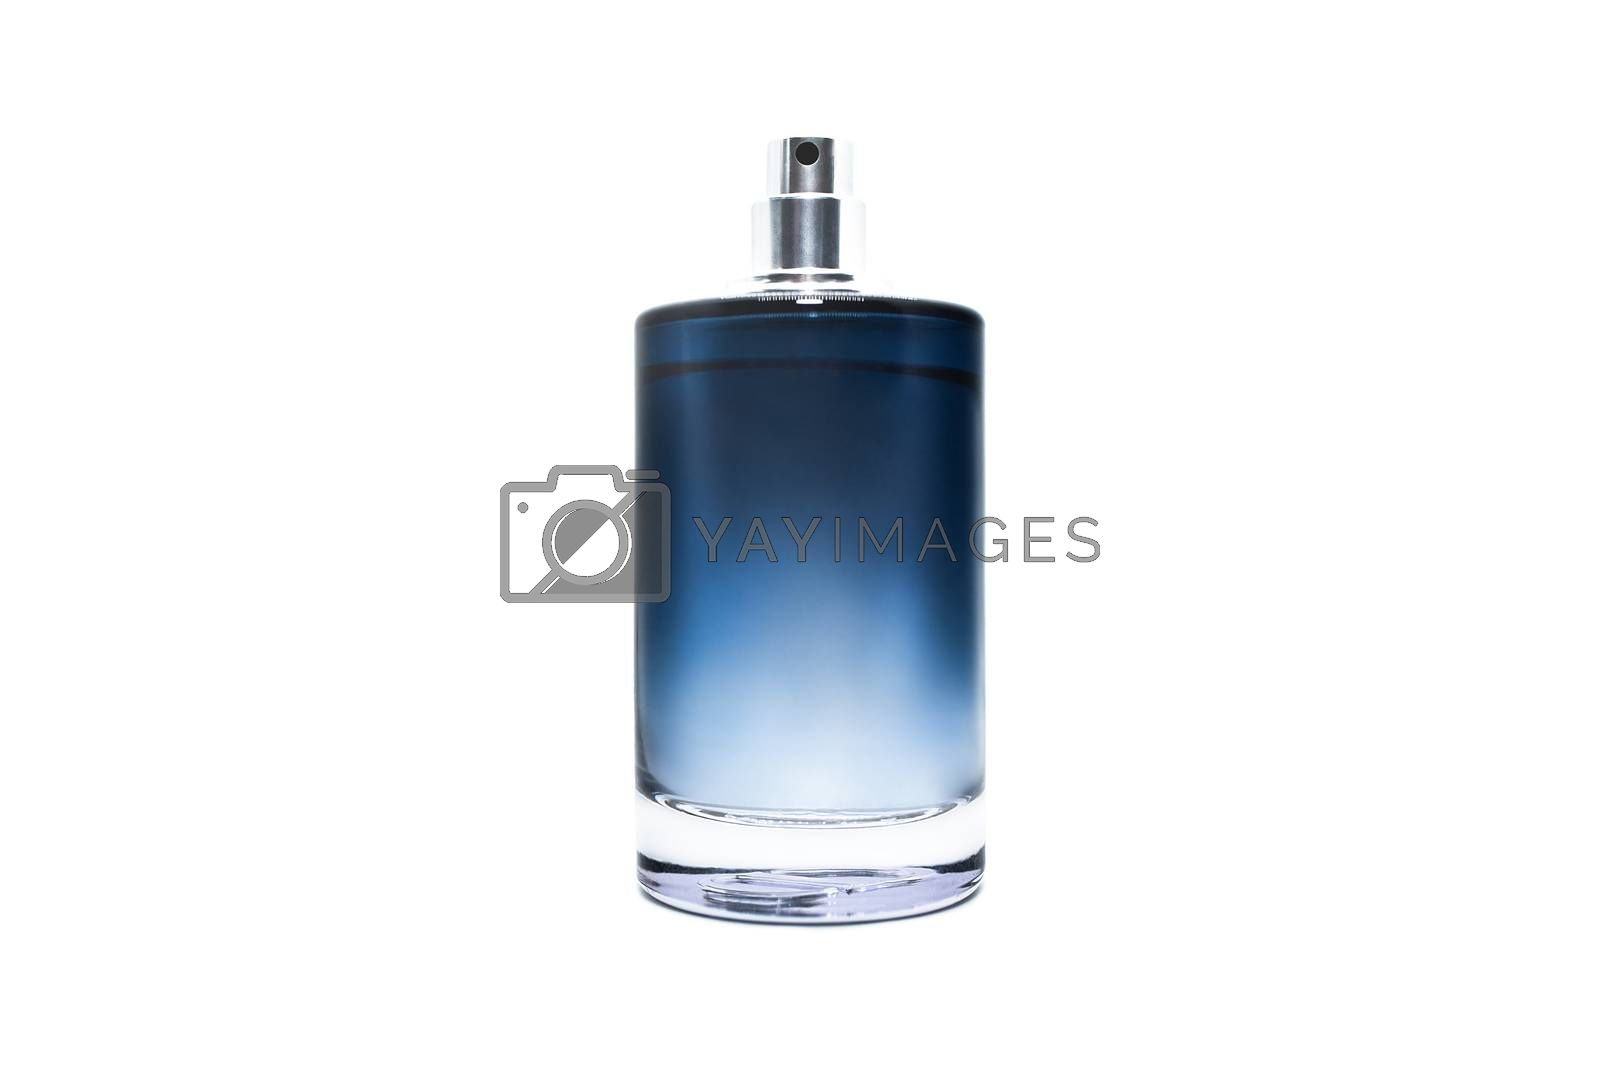 Perfume bottle full of blue liquid isolated on white background. Fragrance for man